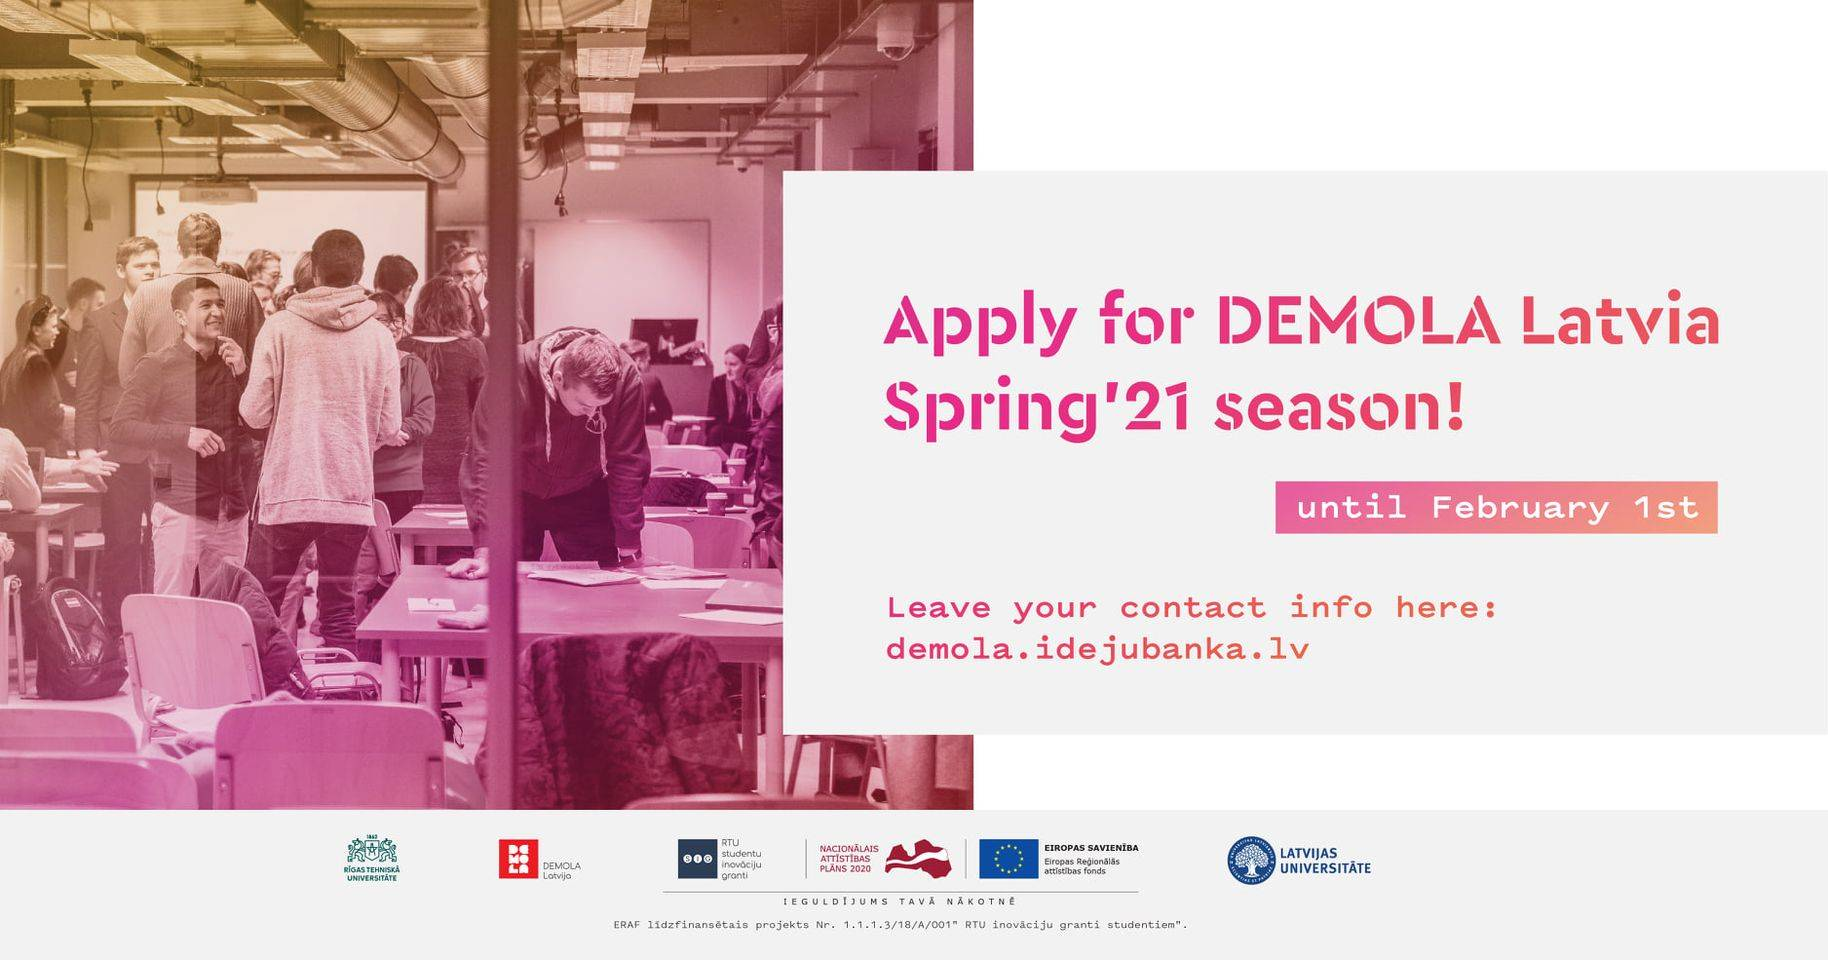 Applications for DEMOLA Latvia Spring season are open!